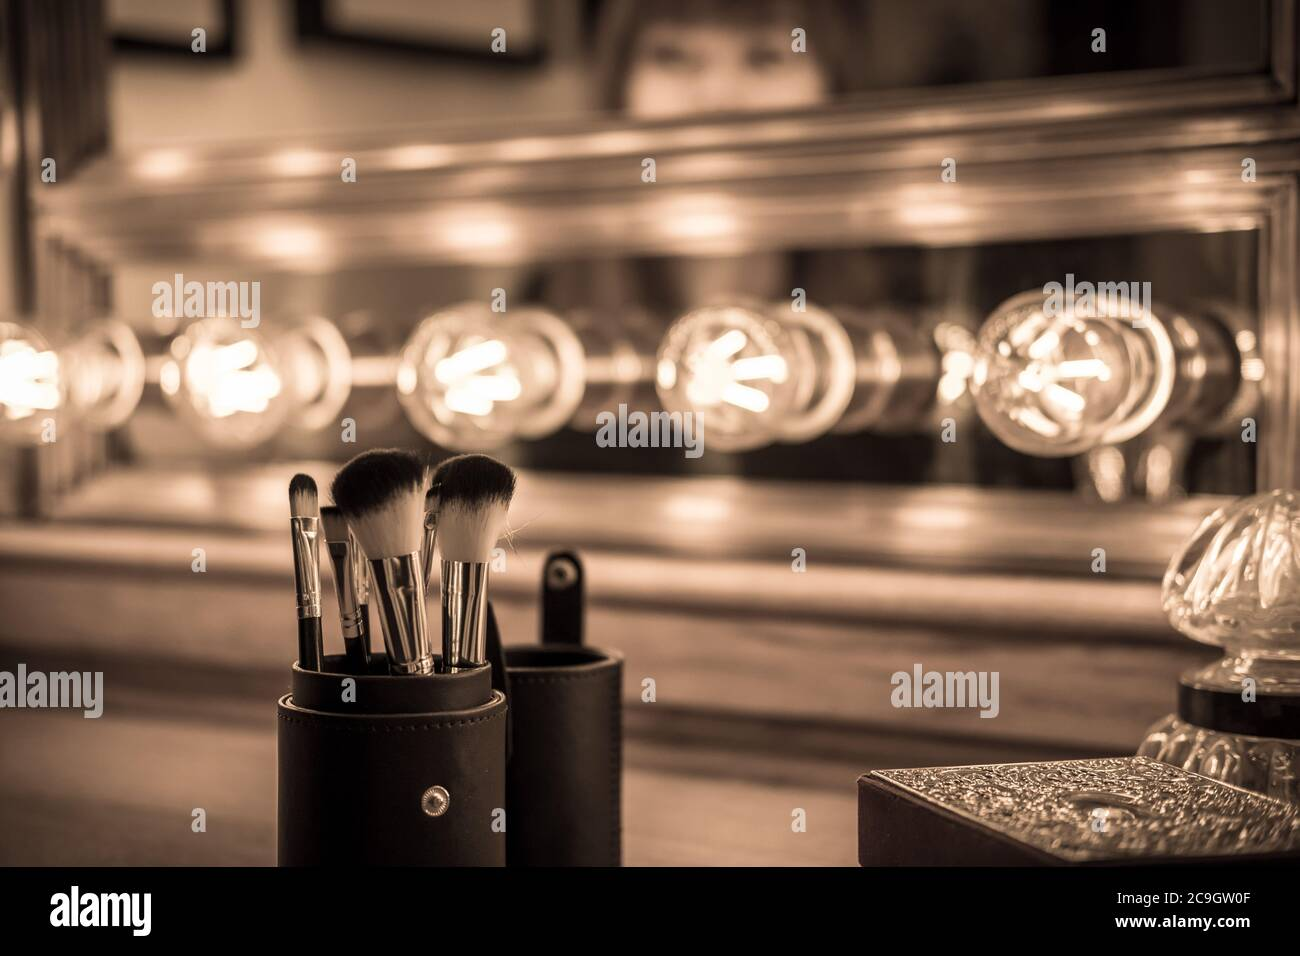 Vintage Vanity Makeup Accessories Makeup Dressing Table With Undefined Woman At Mirror Stock Photo Alamy